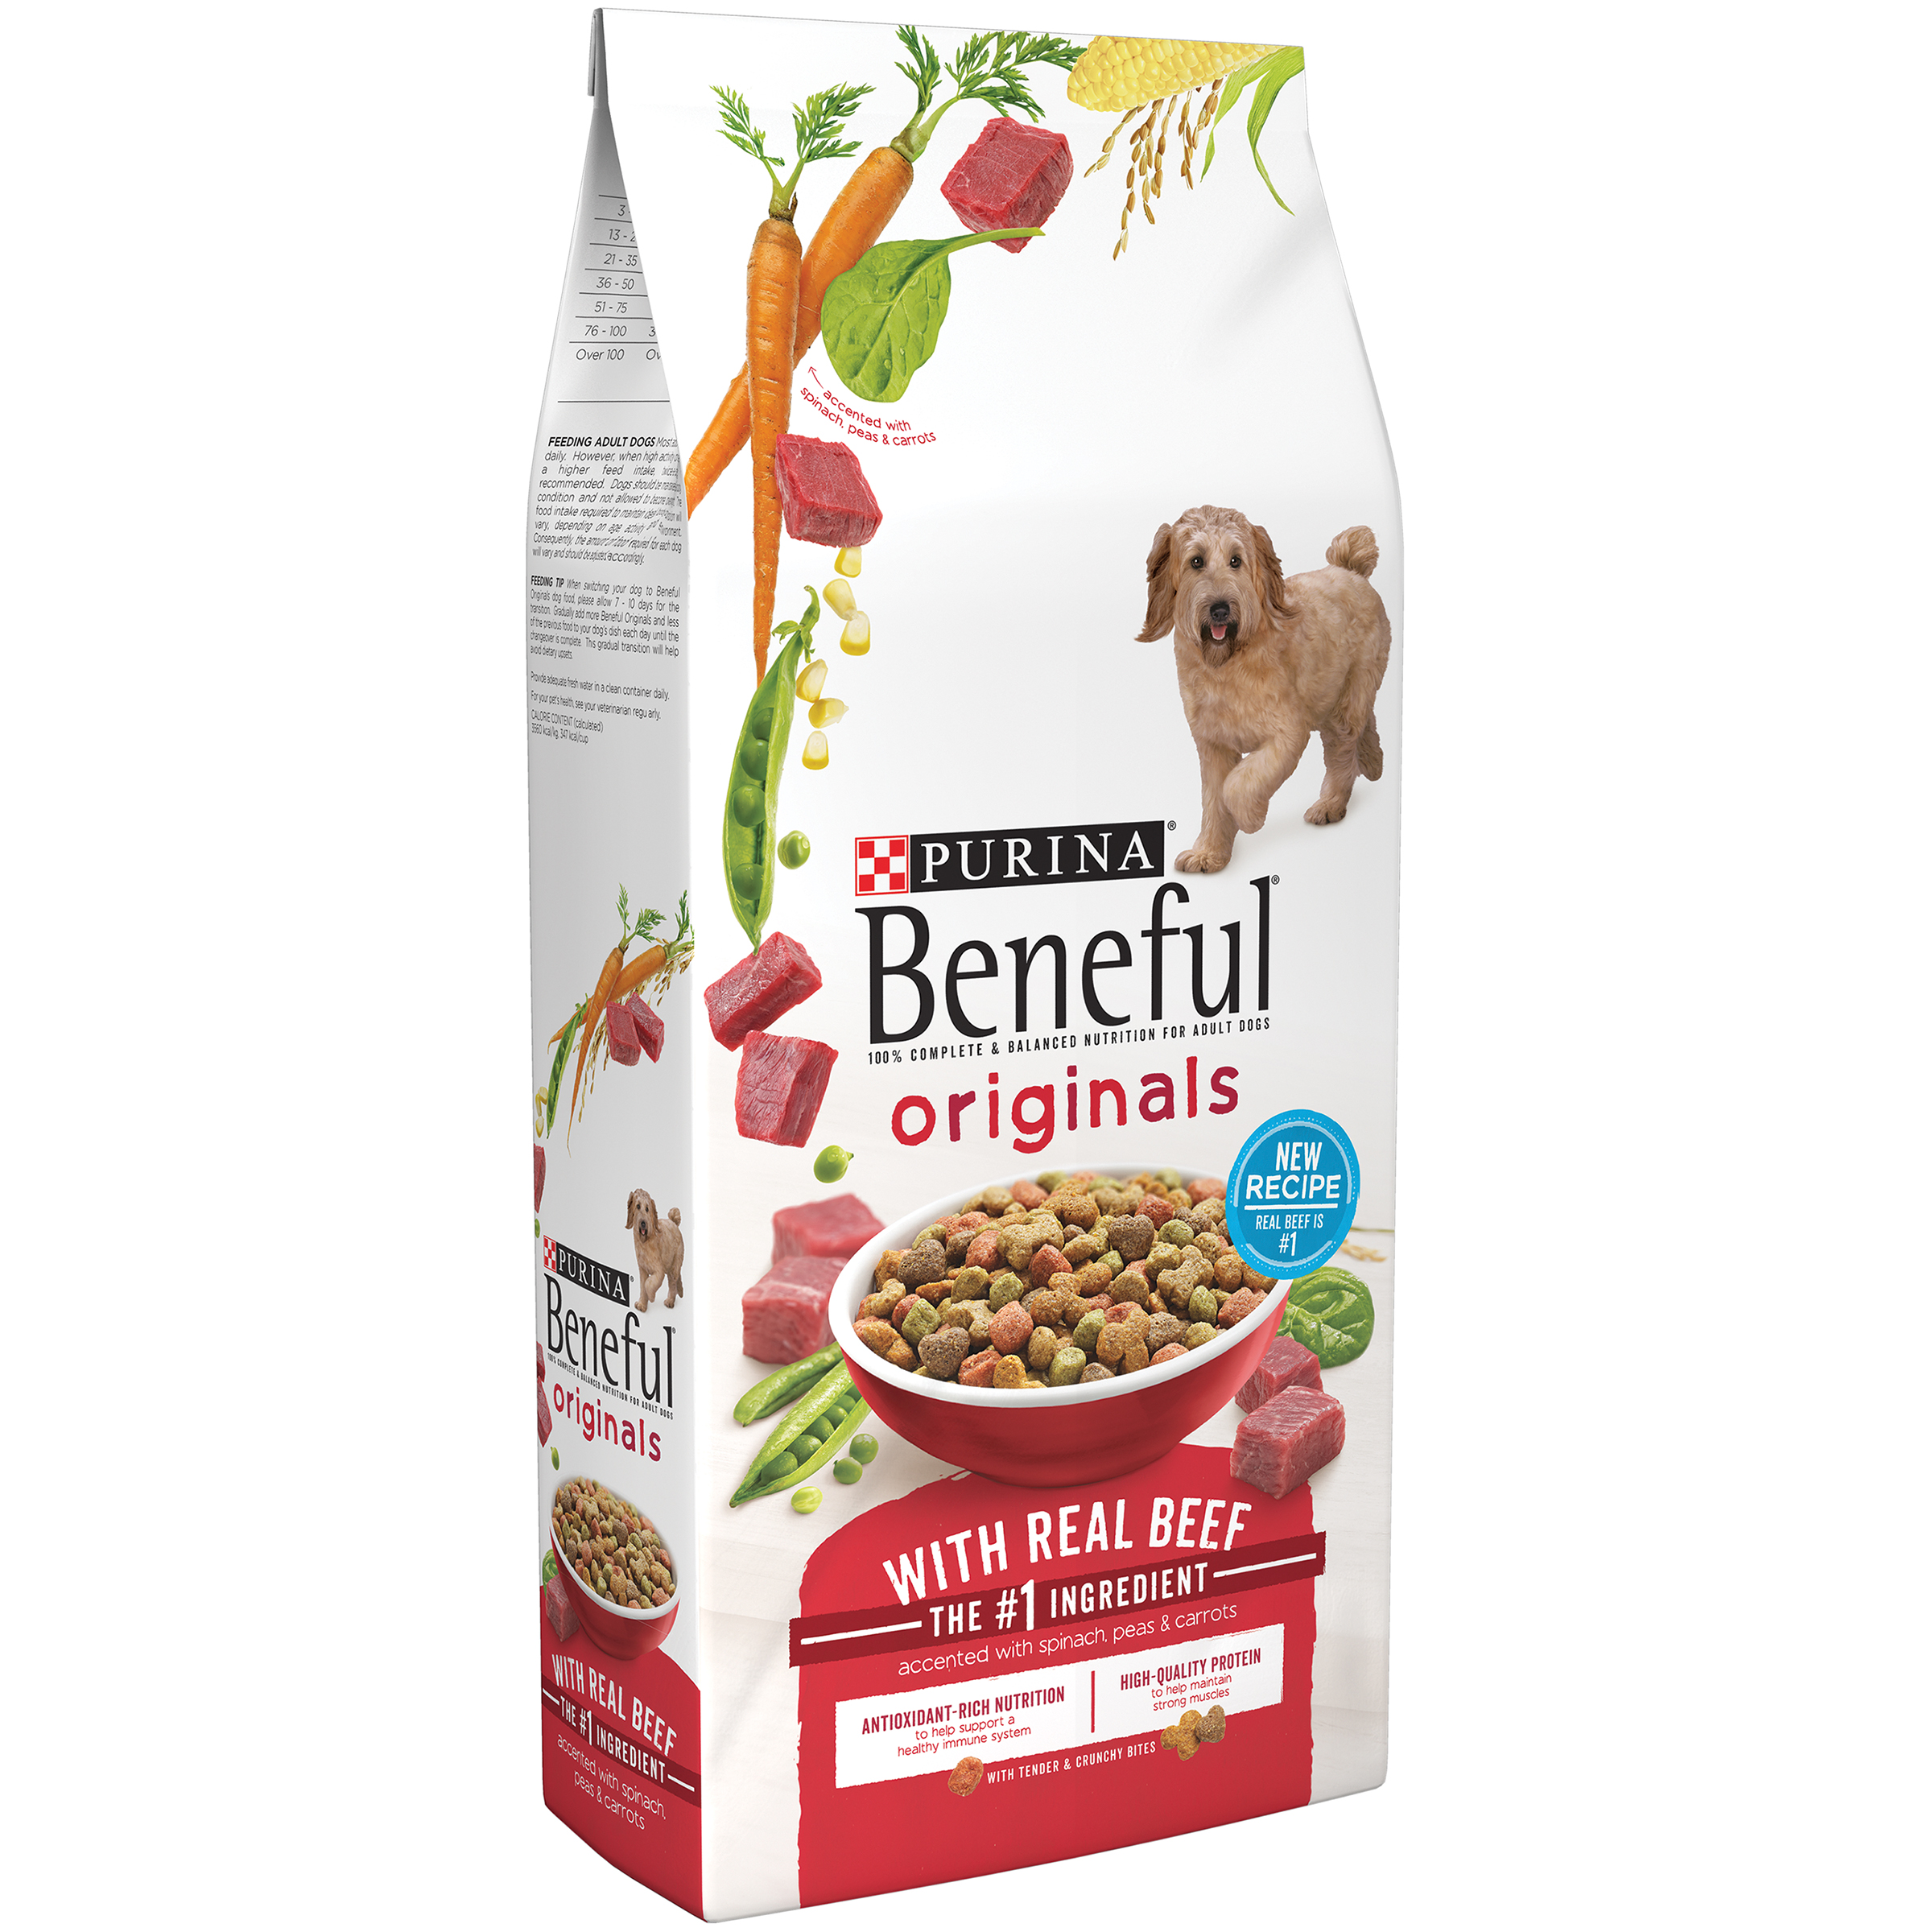 Purina Beneful Originals With Real Beef Dry Dog Food 3.5lb. Bag